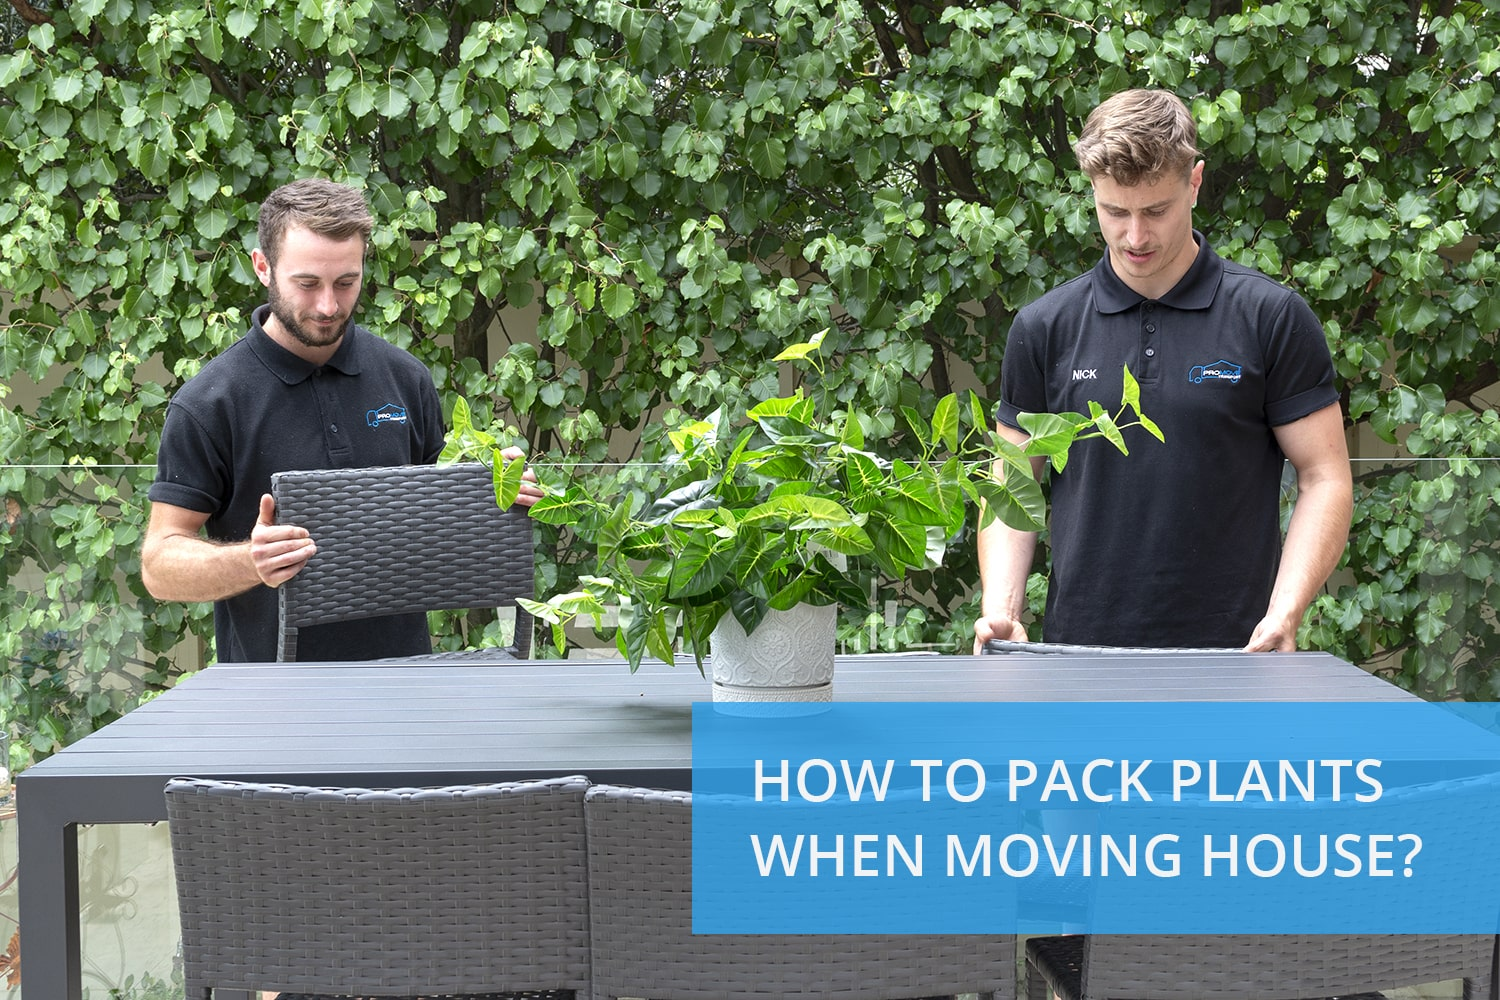 How to pack plants when moving house?